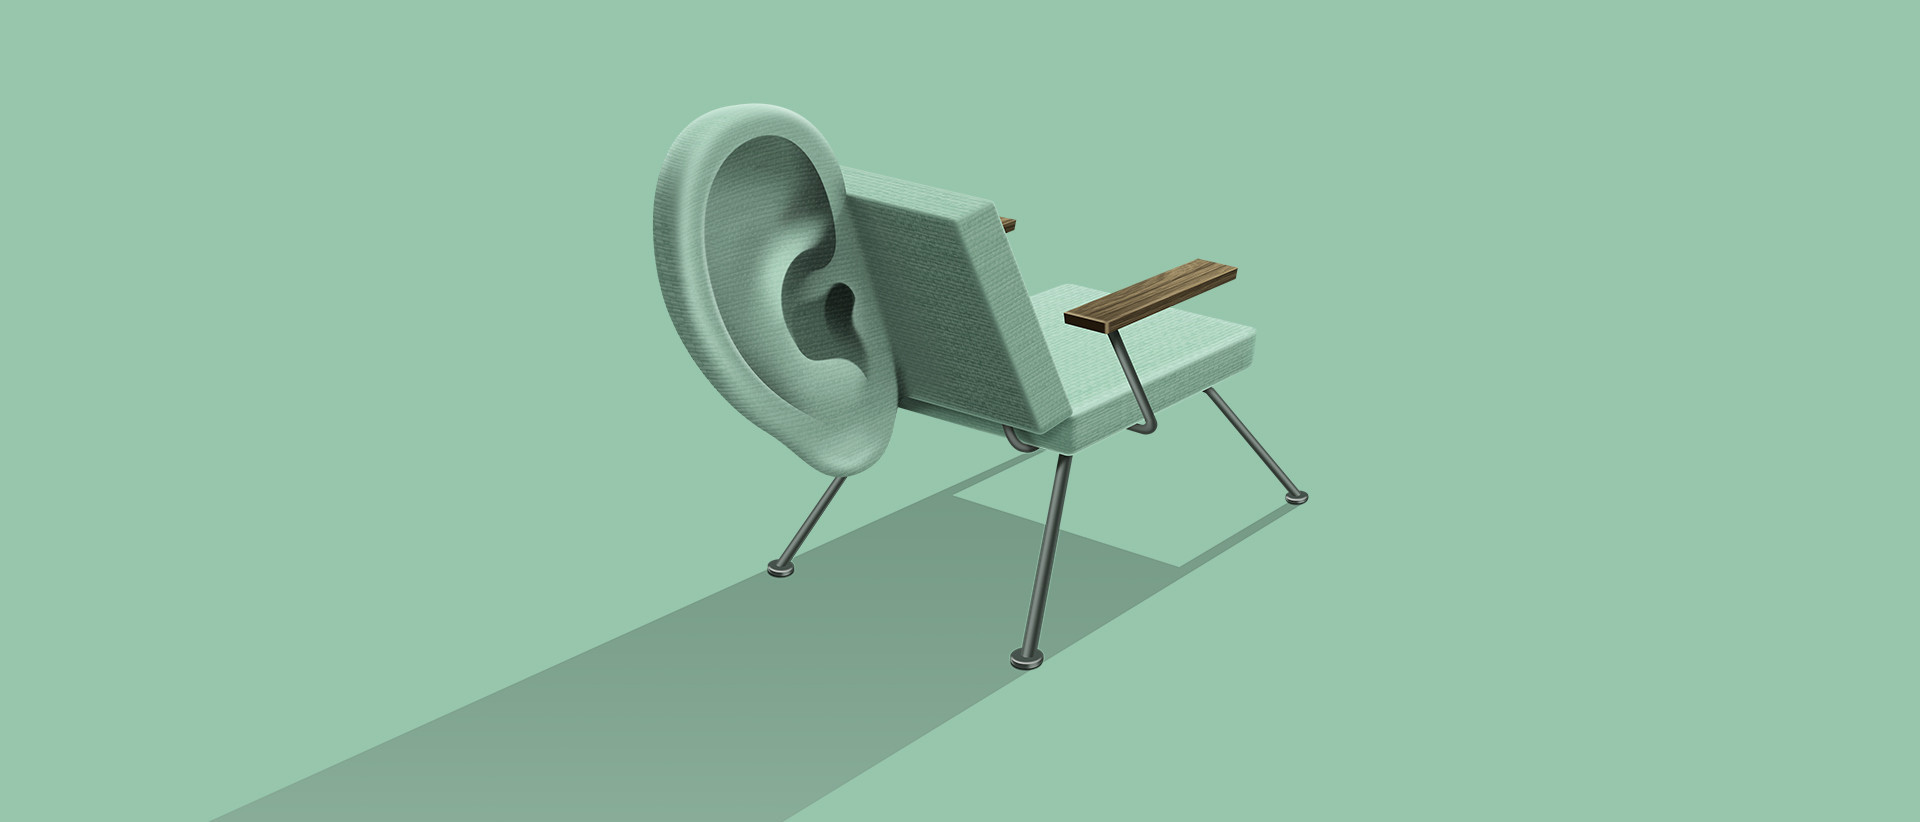 Operation Easy Chair, or how a little company in Holland helped the